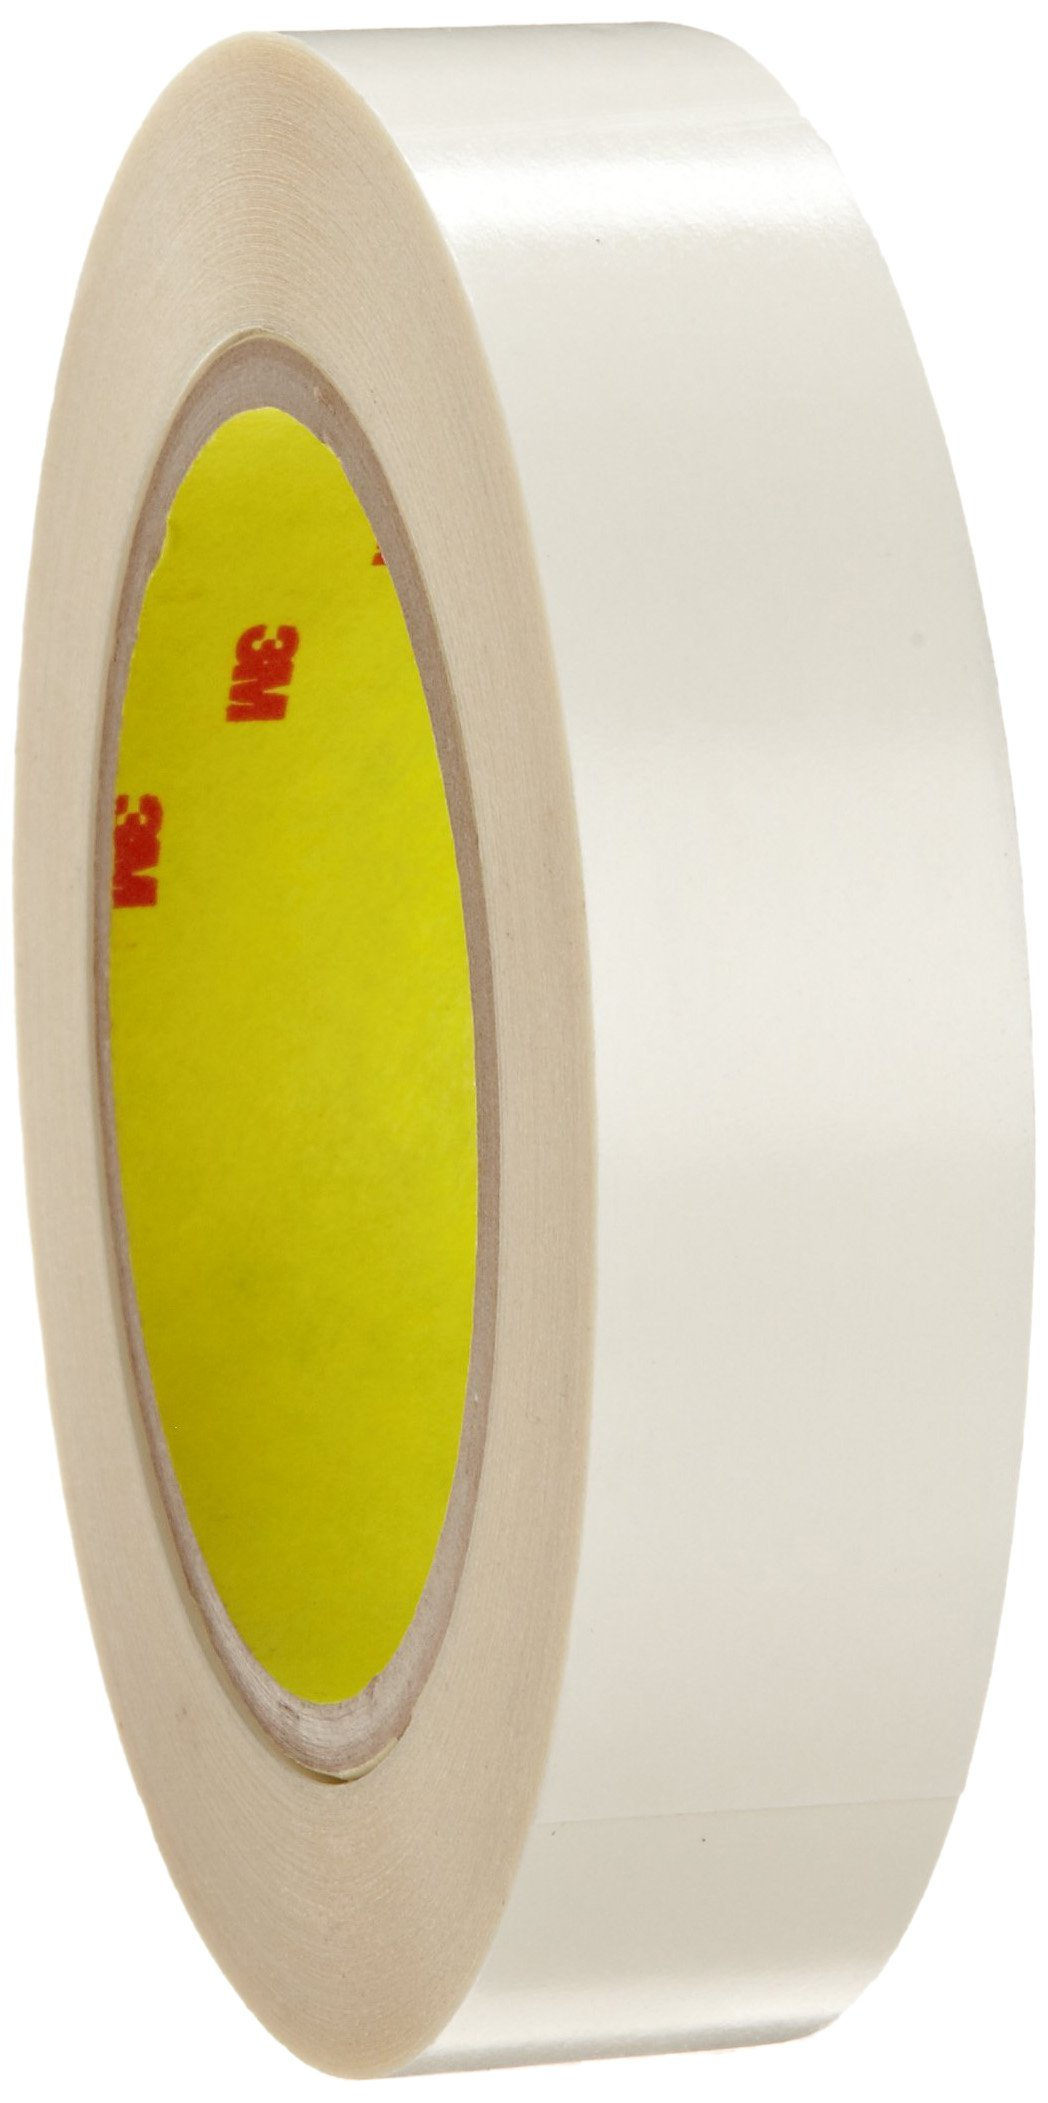 3M Double Coated Tape 444 Clear, 1 in x 36 yd 3.9 mil (Case of 36)